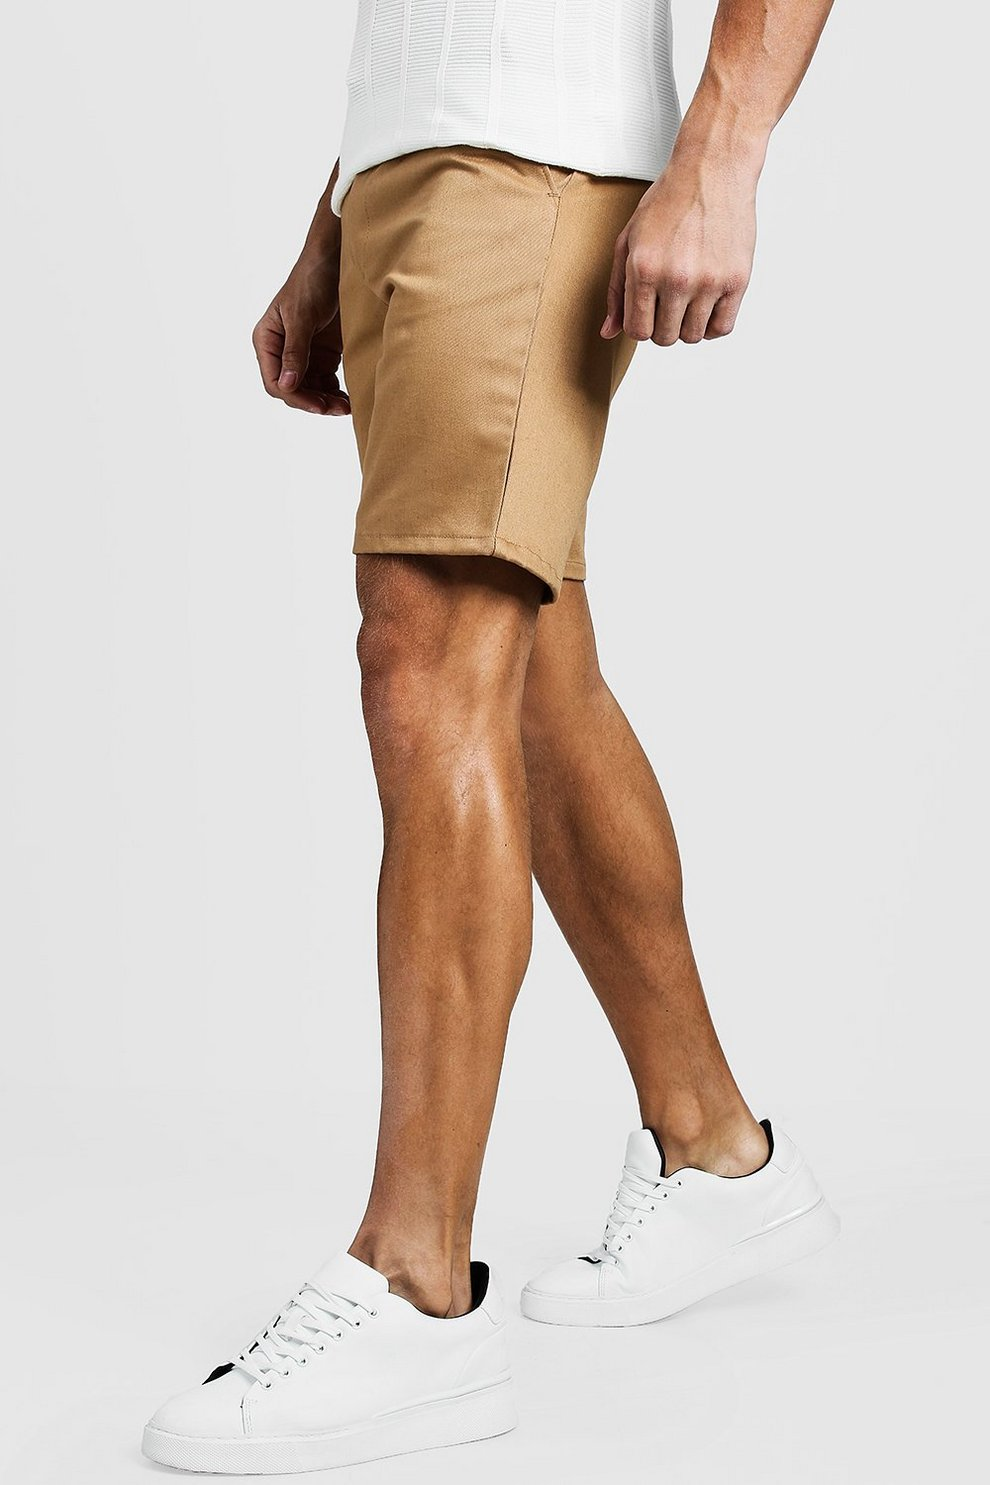 Boohoo Mid Length Slim Fit Chino Shorts In Stone Factory Outlet Cheap Price Browse Online Clearance Store High Quality Outlet Locations OxFF0FGp